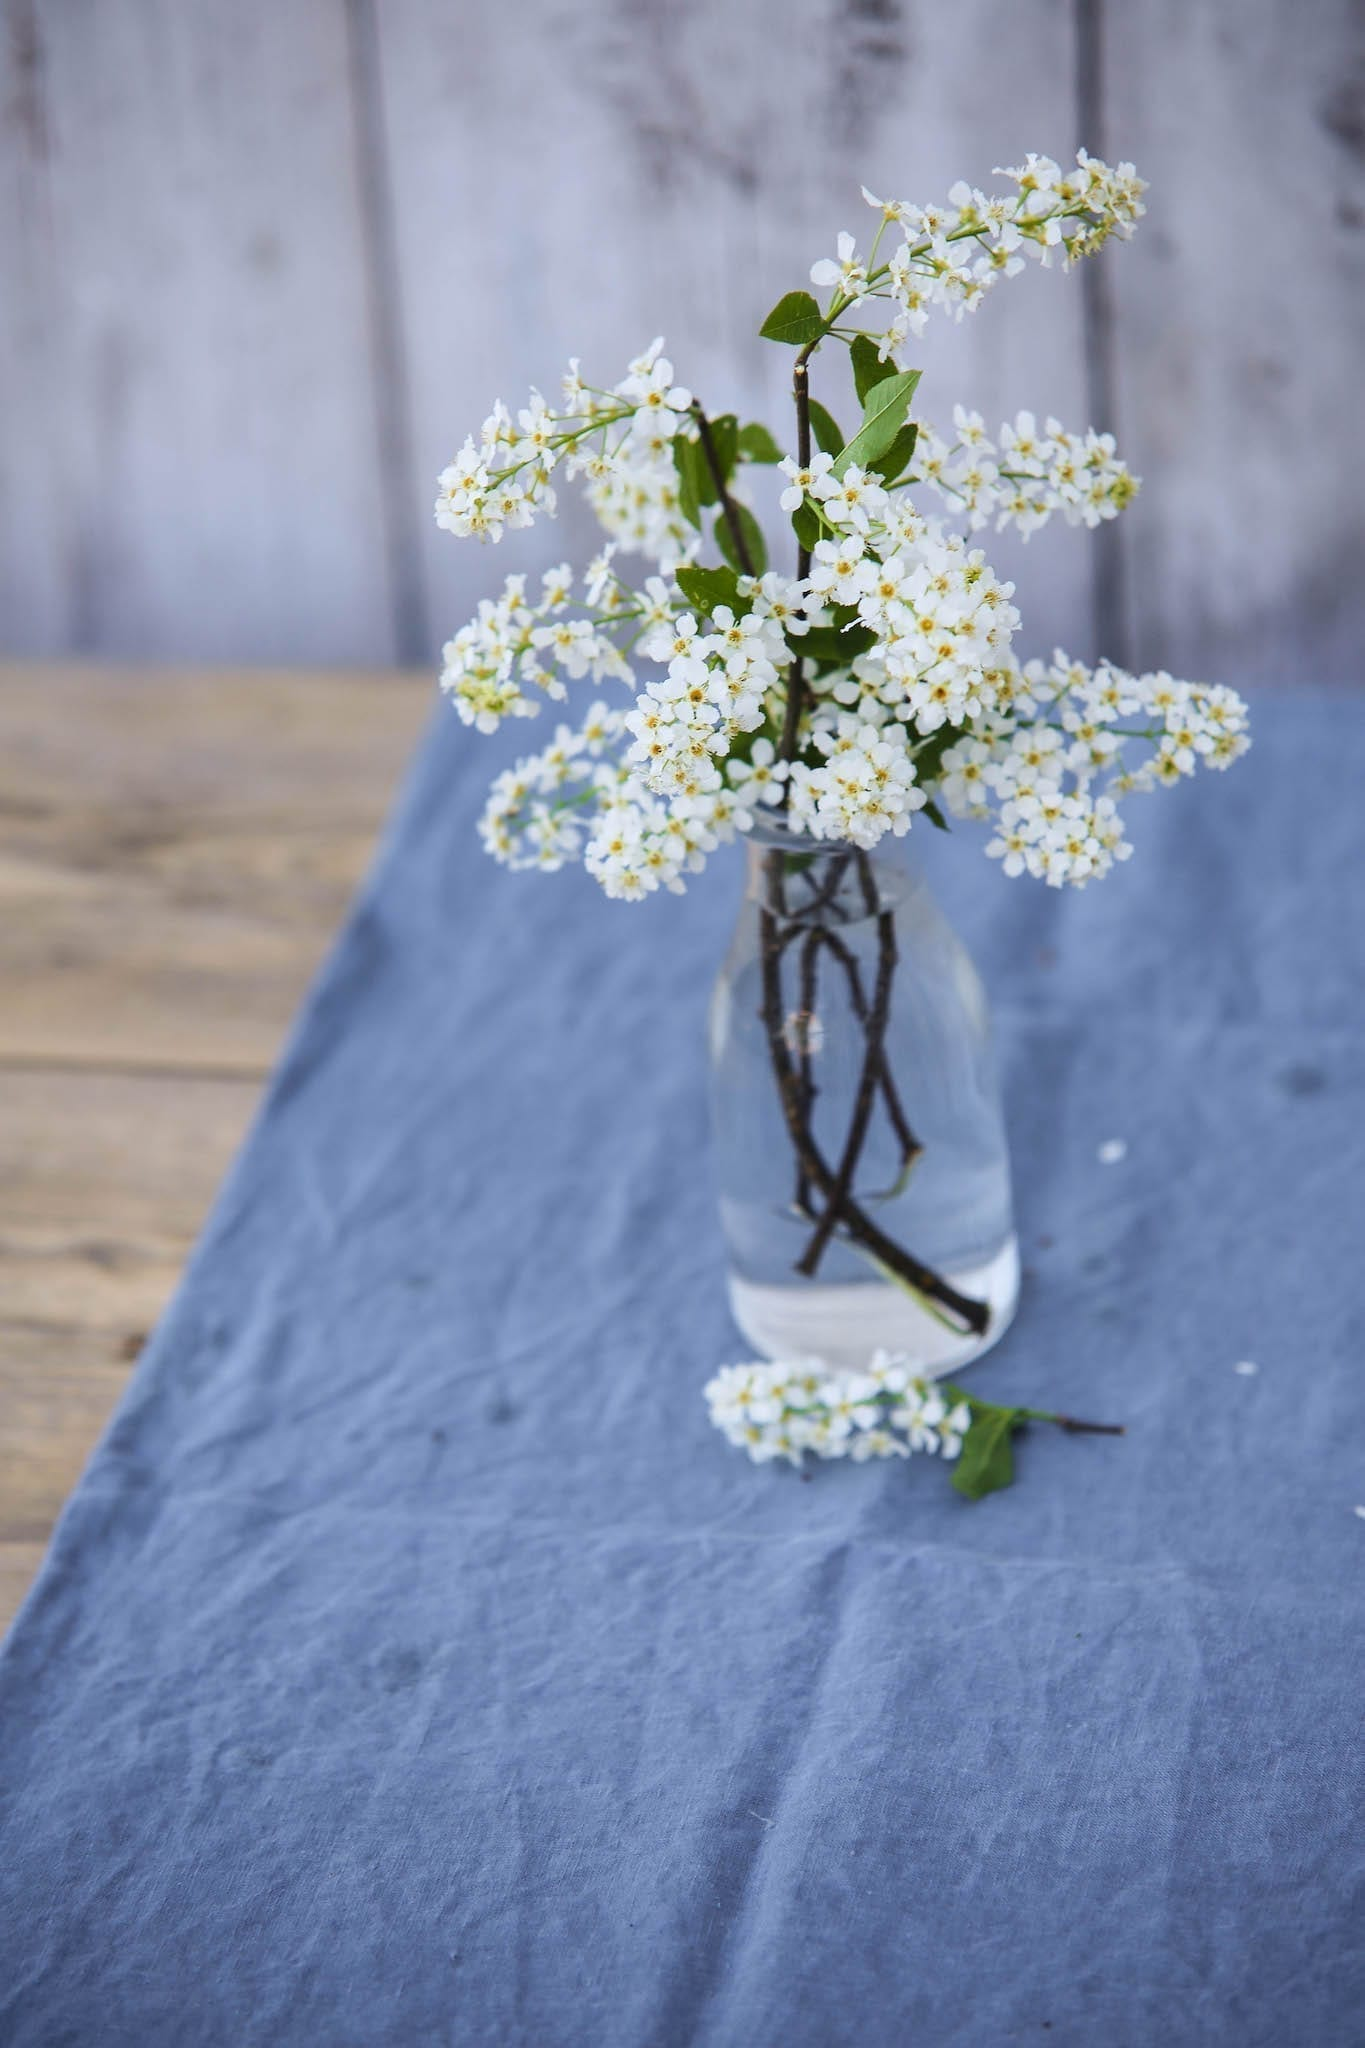 Blue Linen Tablecloth by MagicLinen